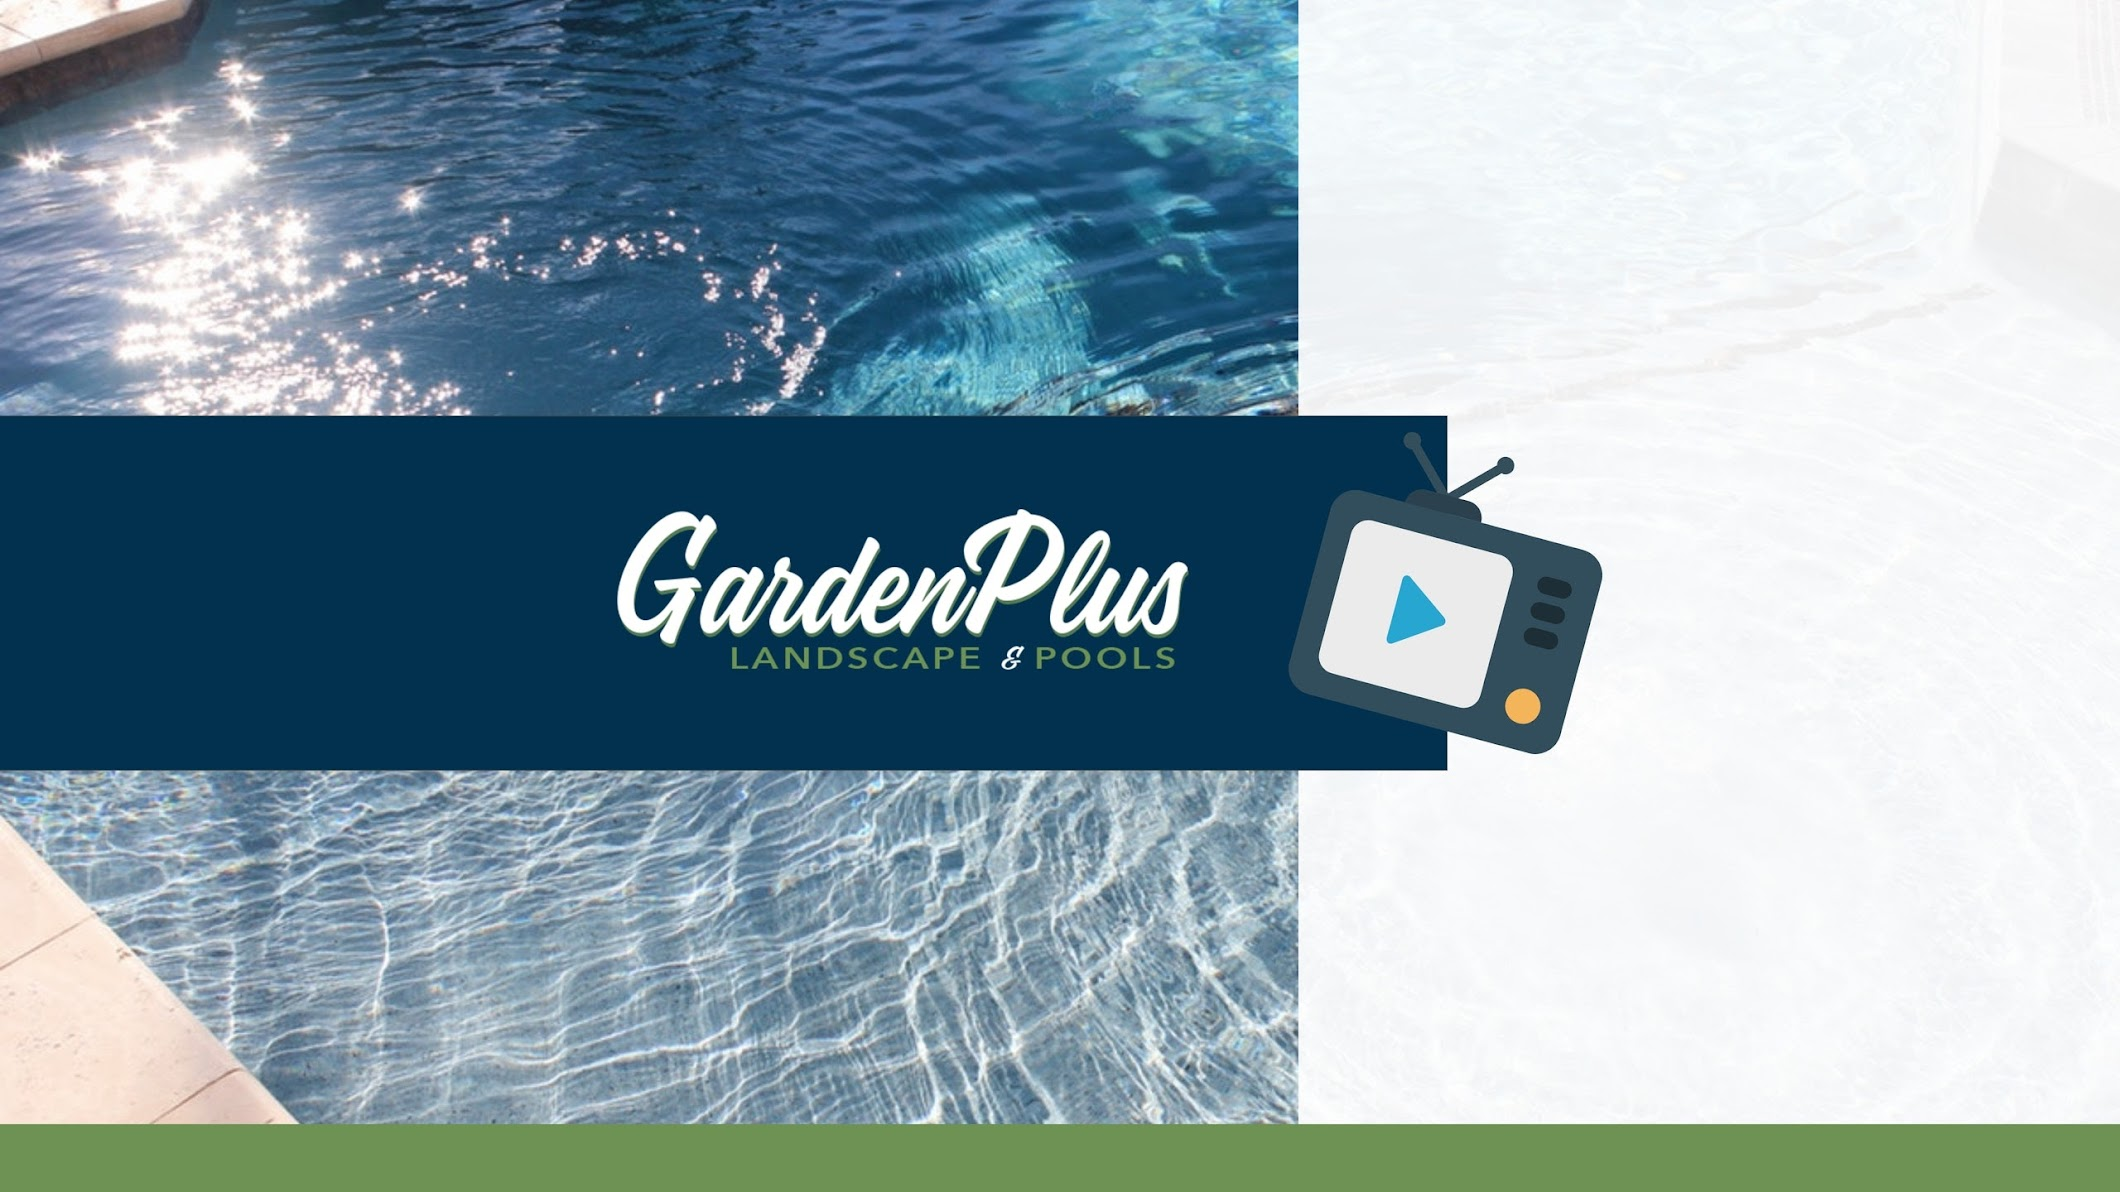 GardenPlus Landscape & Pools Scottsdale AZ